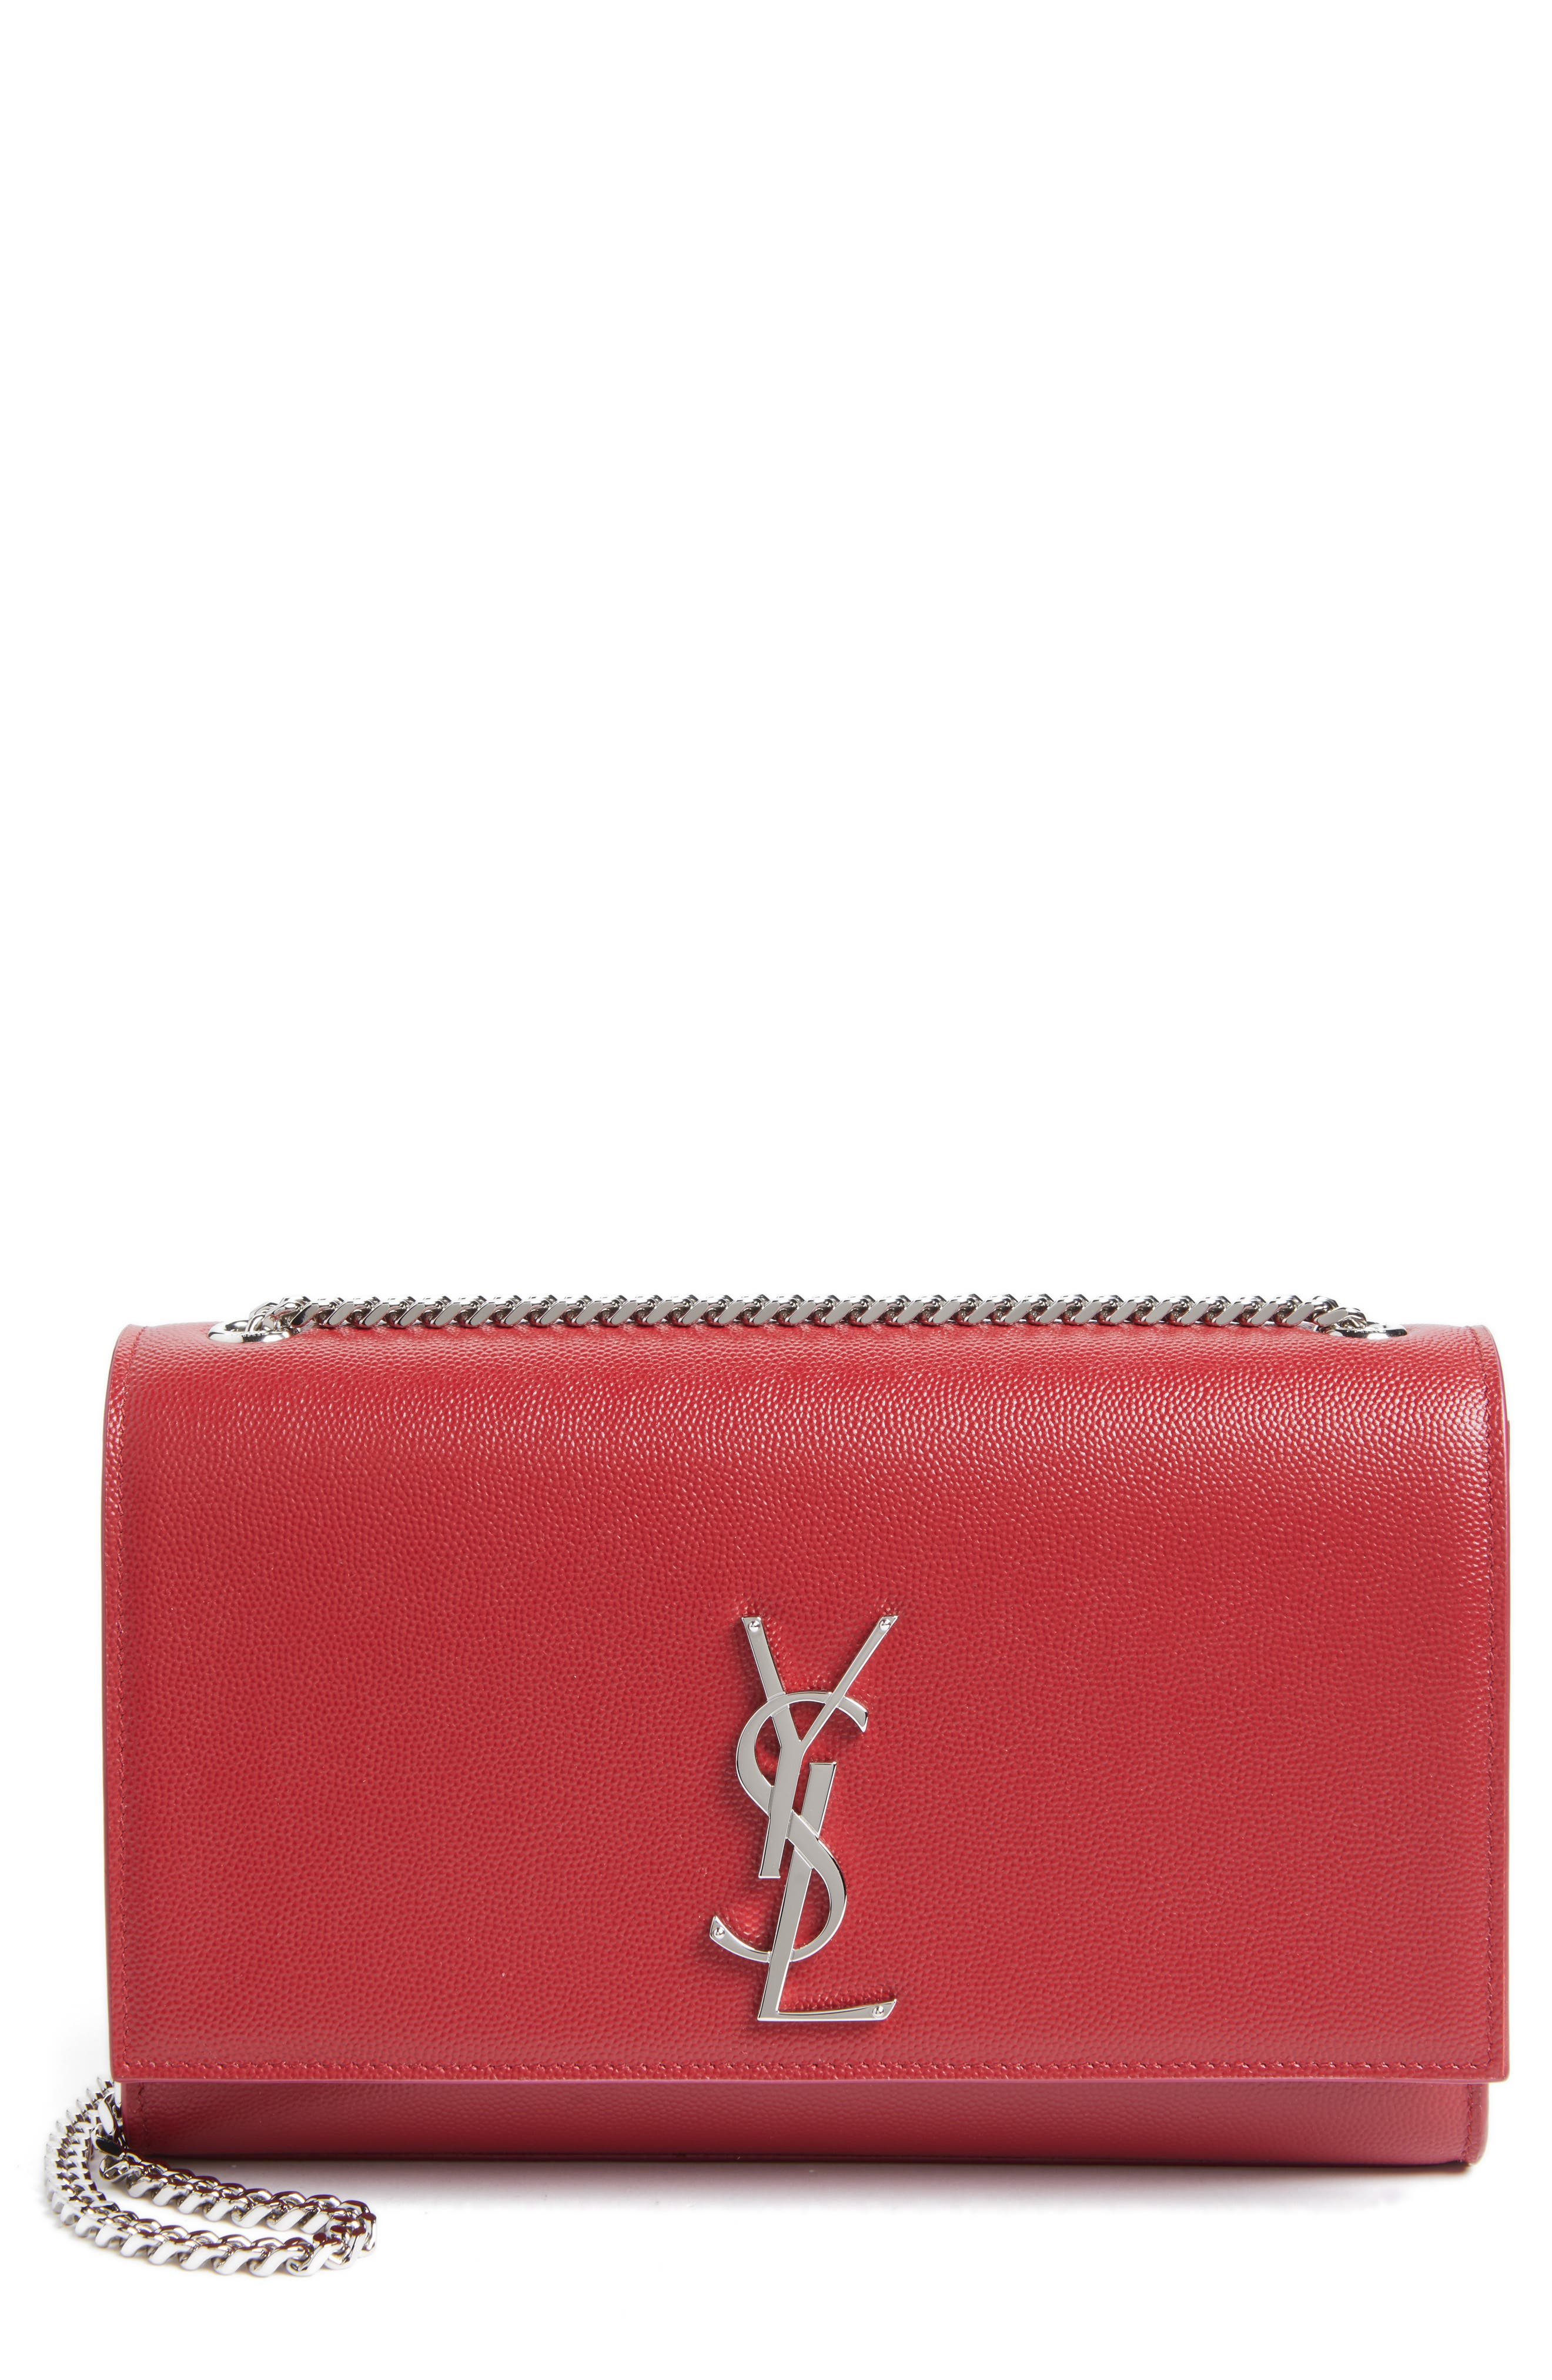 Saint Laurent Medium Kate Calfskin Leather Wallet on a Chain